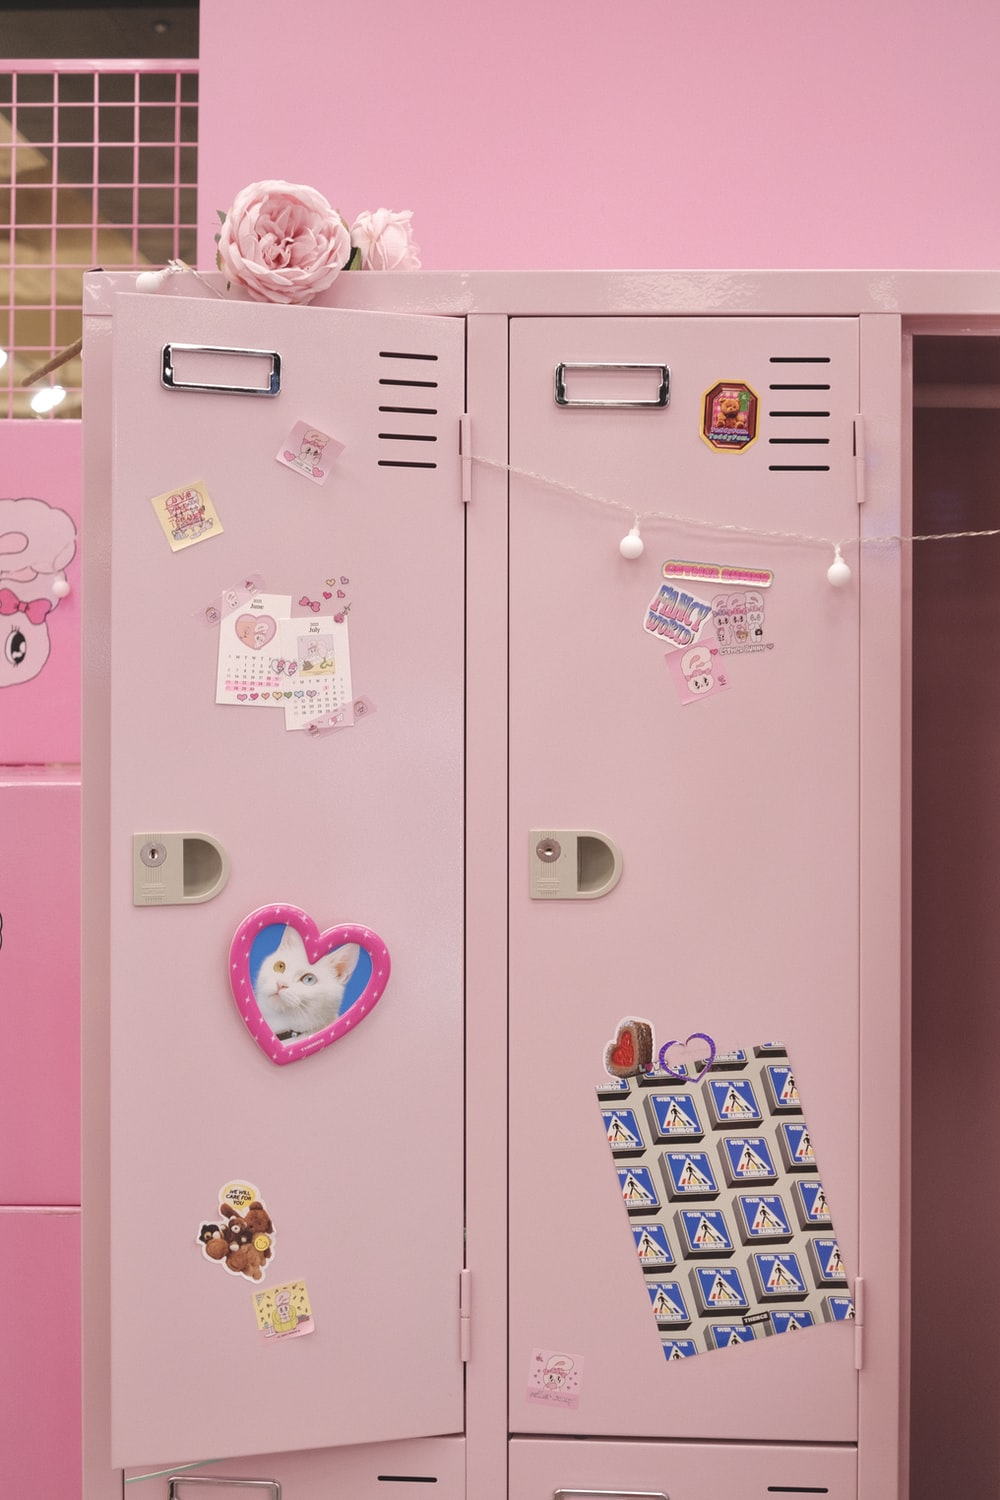 pink and white cabinet with stickers